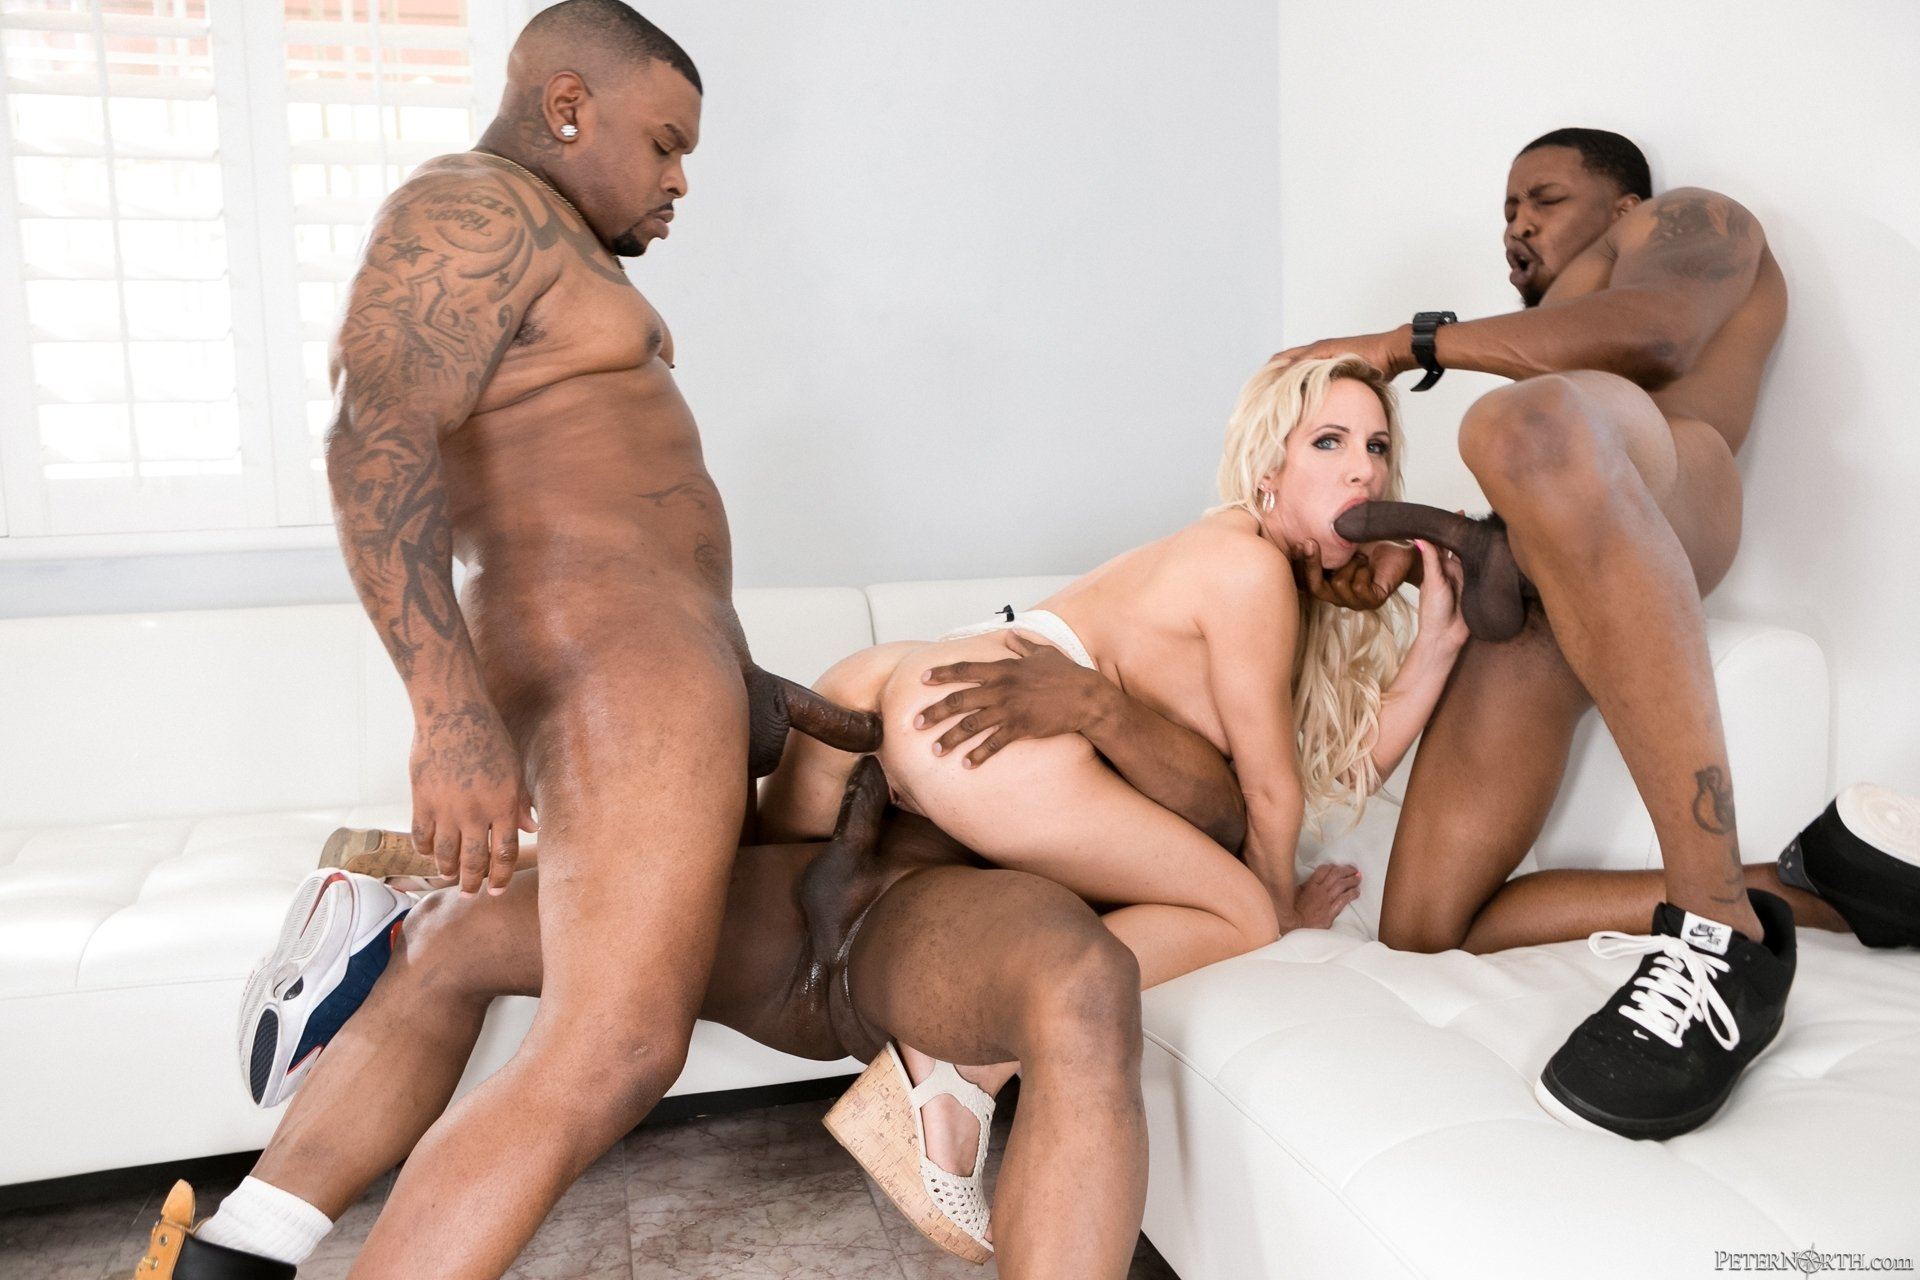 group sex in public place